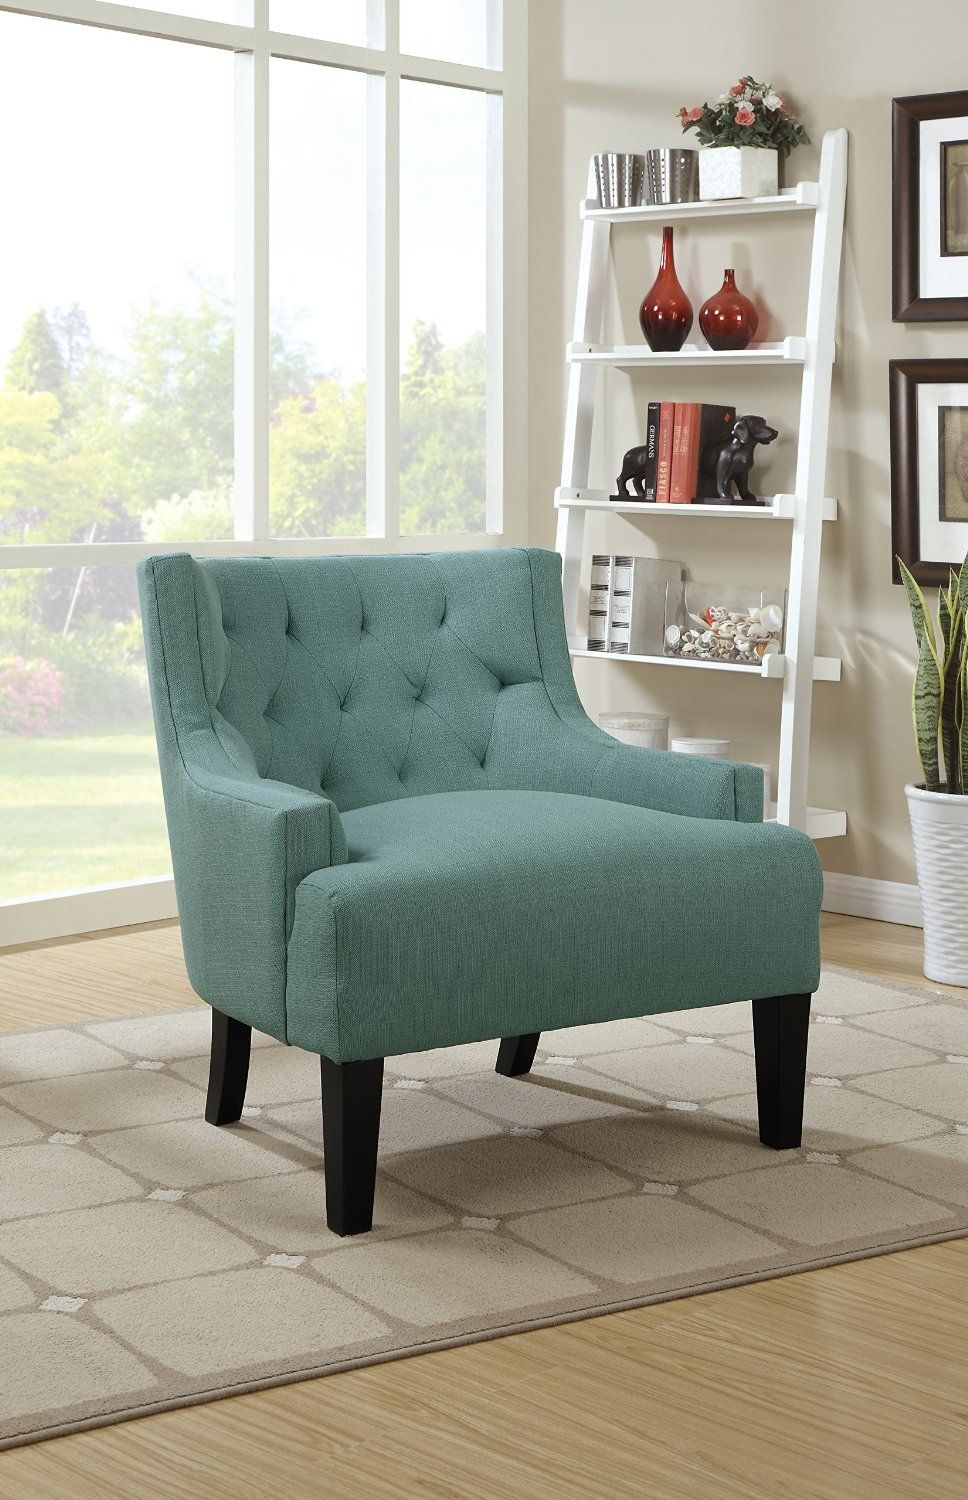 Poundex Bobkona Ansley Microfiber Accent Chair